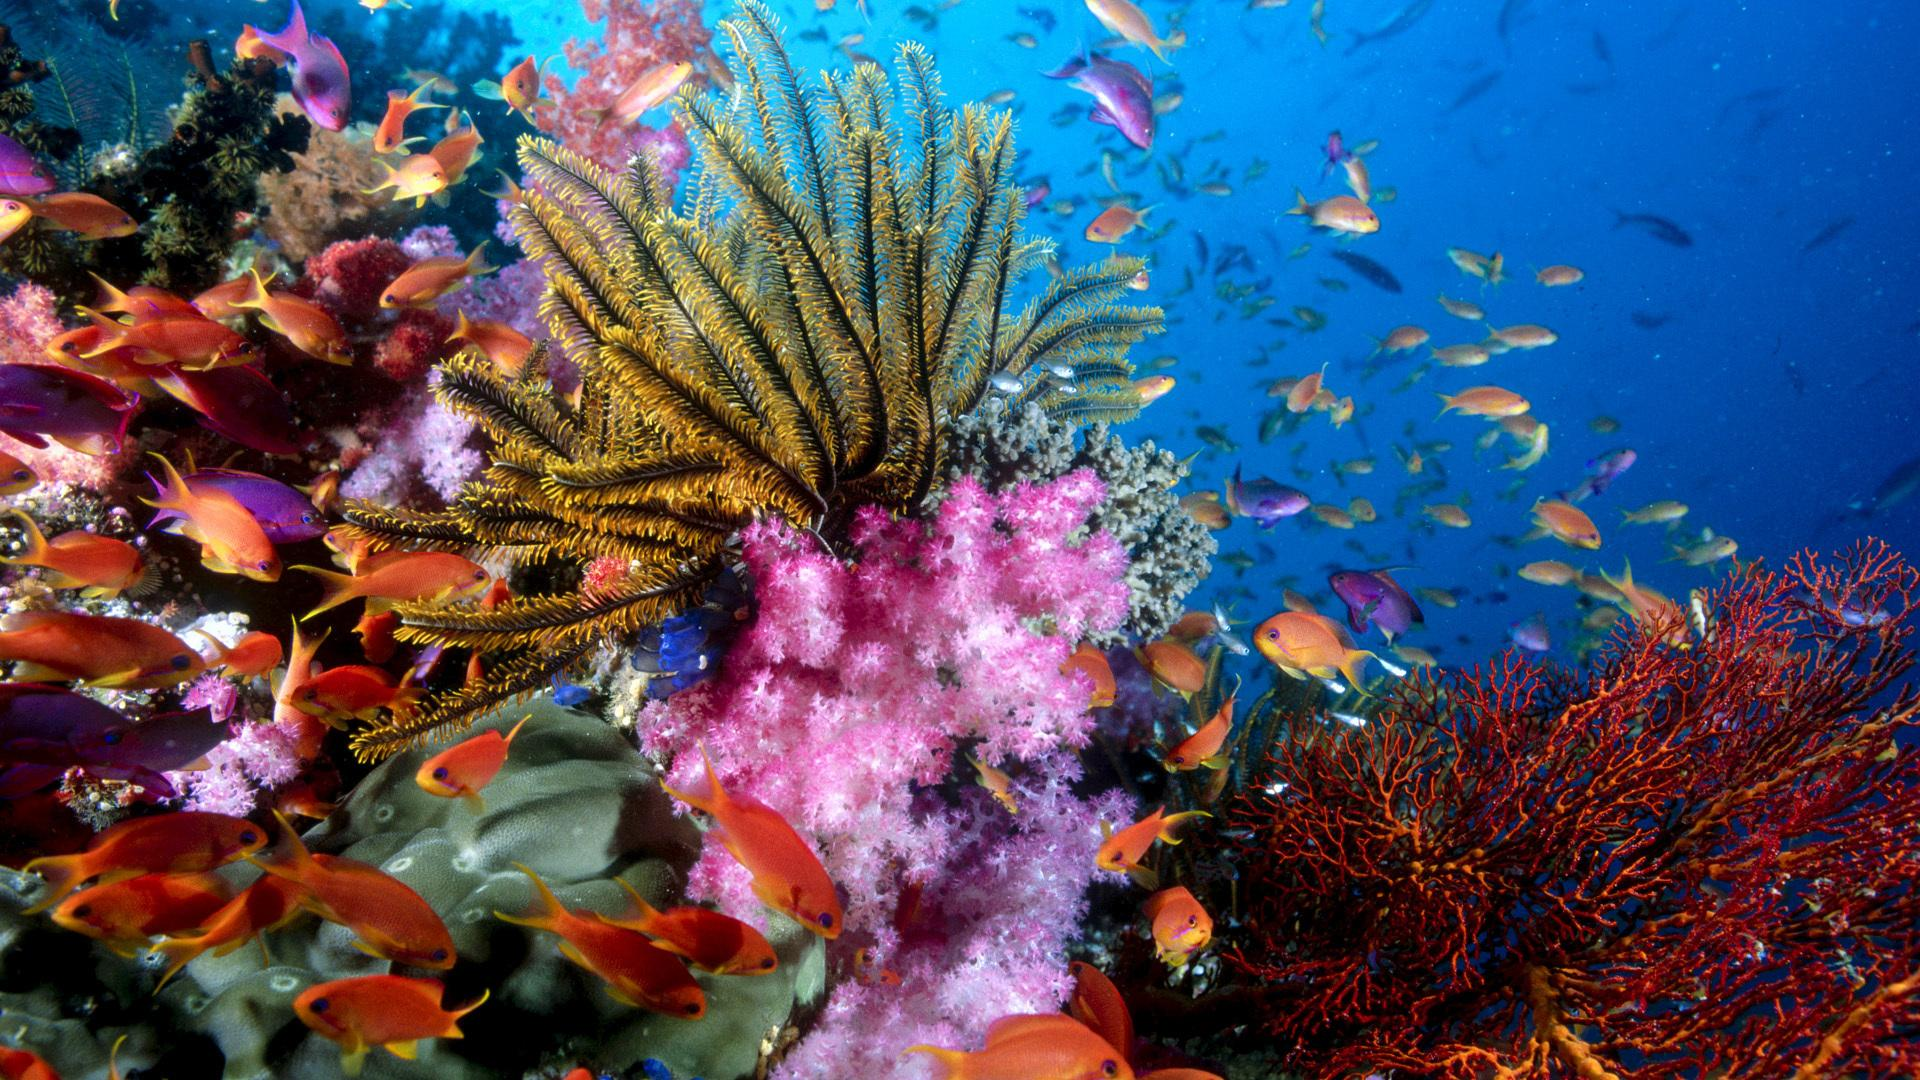 Coral Reef HD Wallpapers 1162